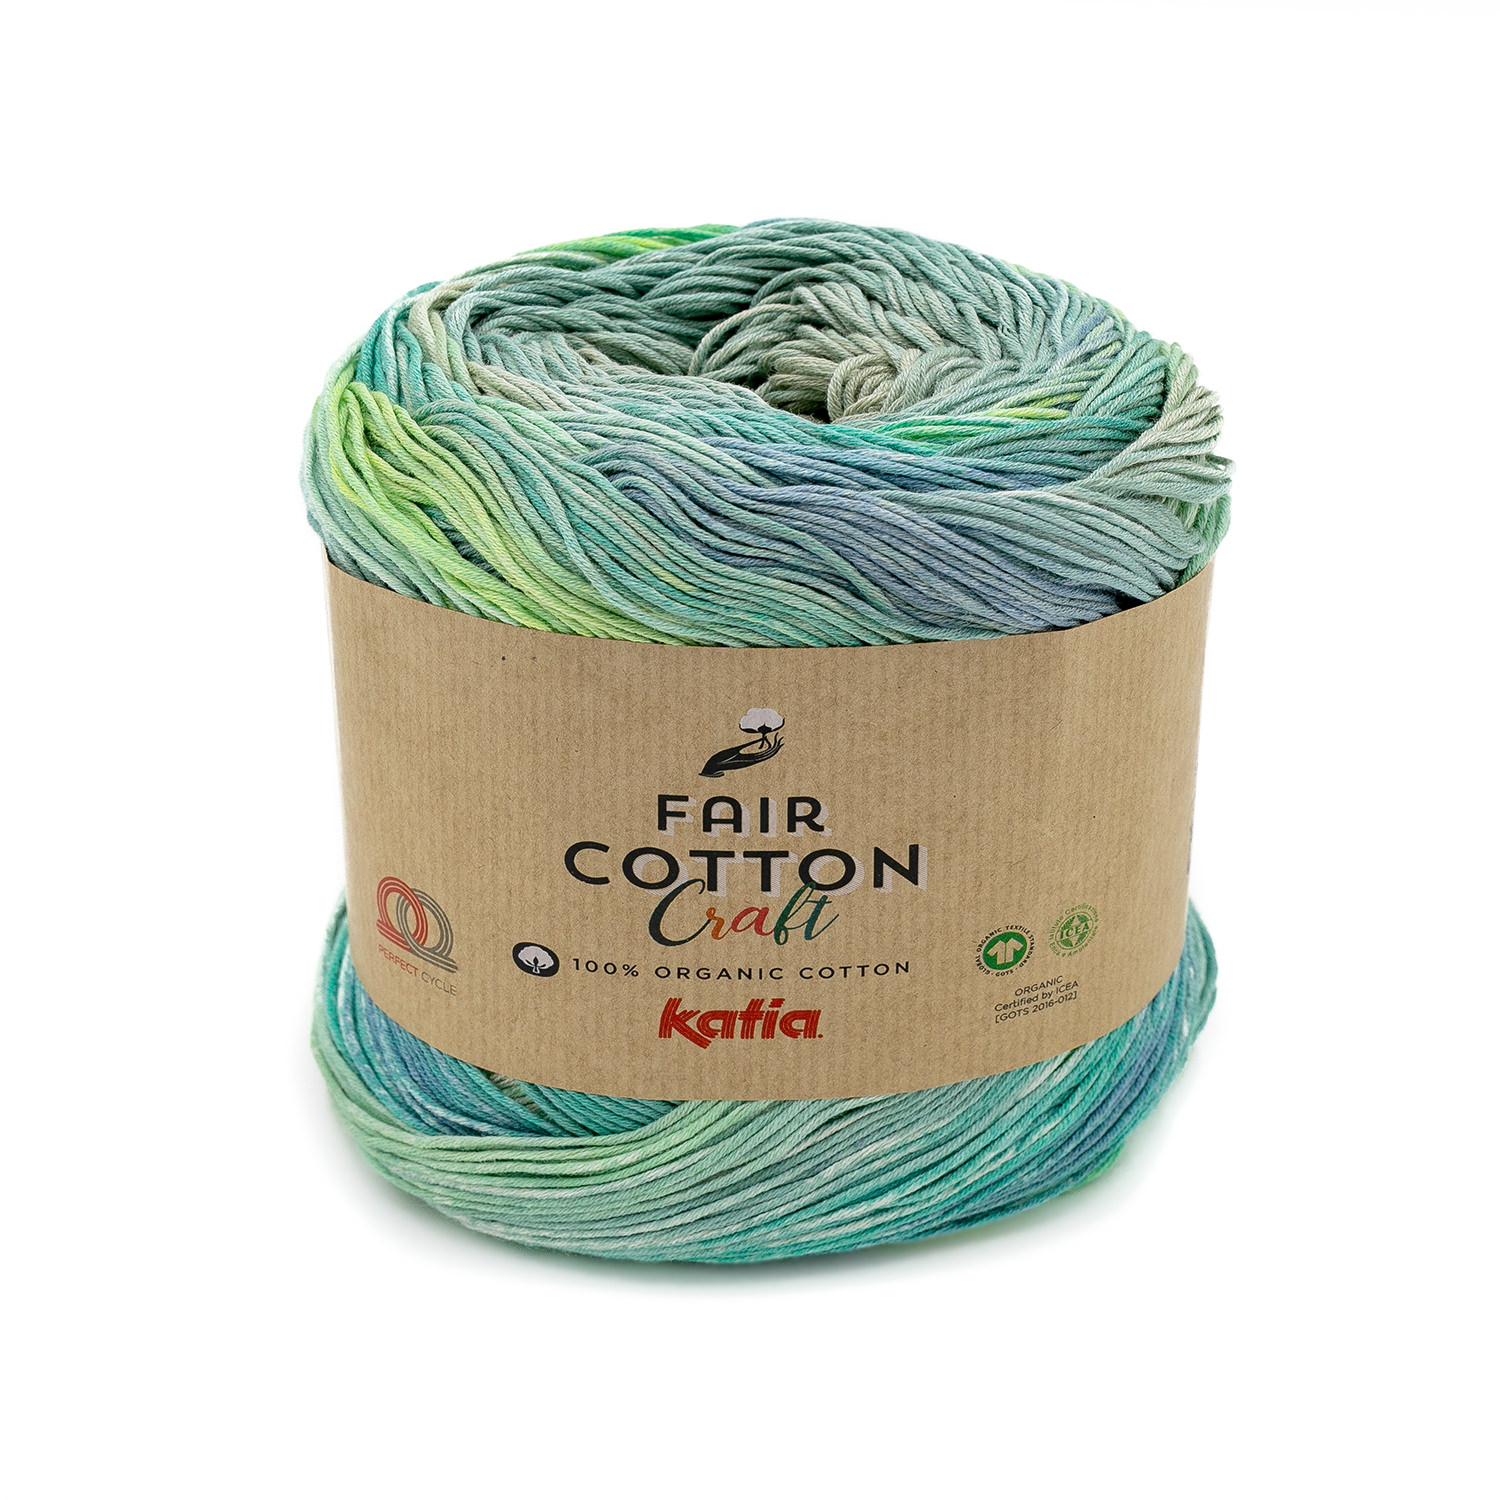 Fair Cotton CRAFT 600 Beige-mint green-lemon yellow-blue